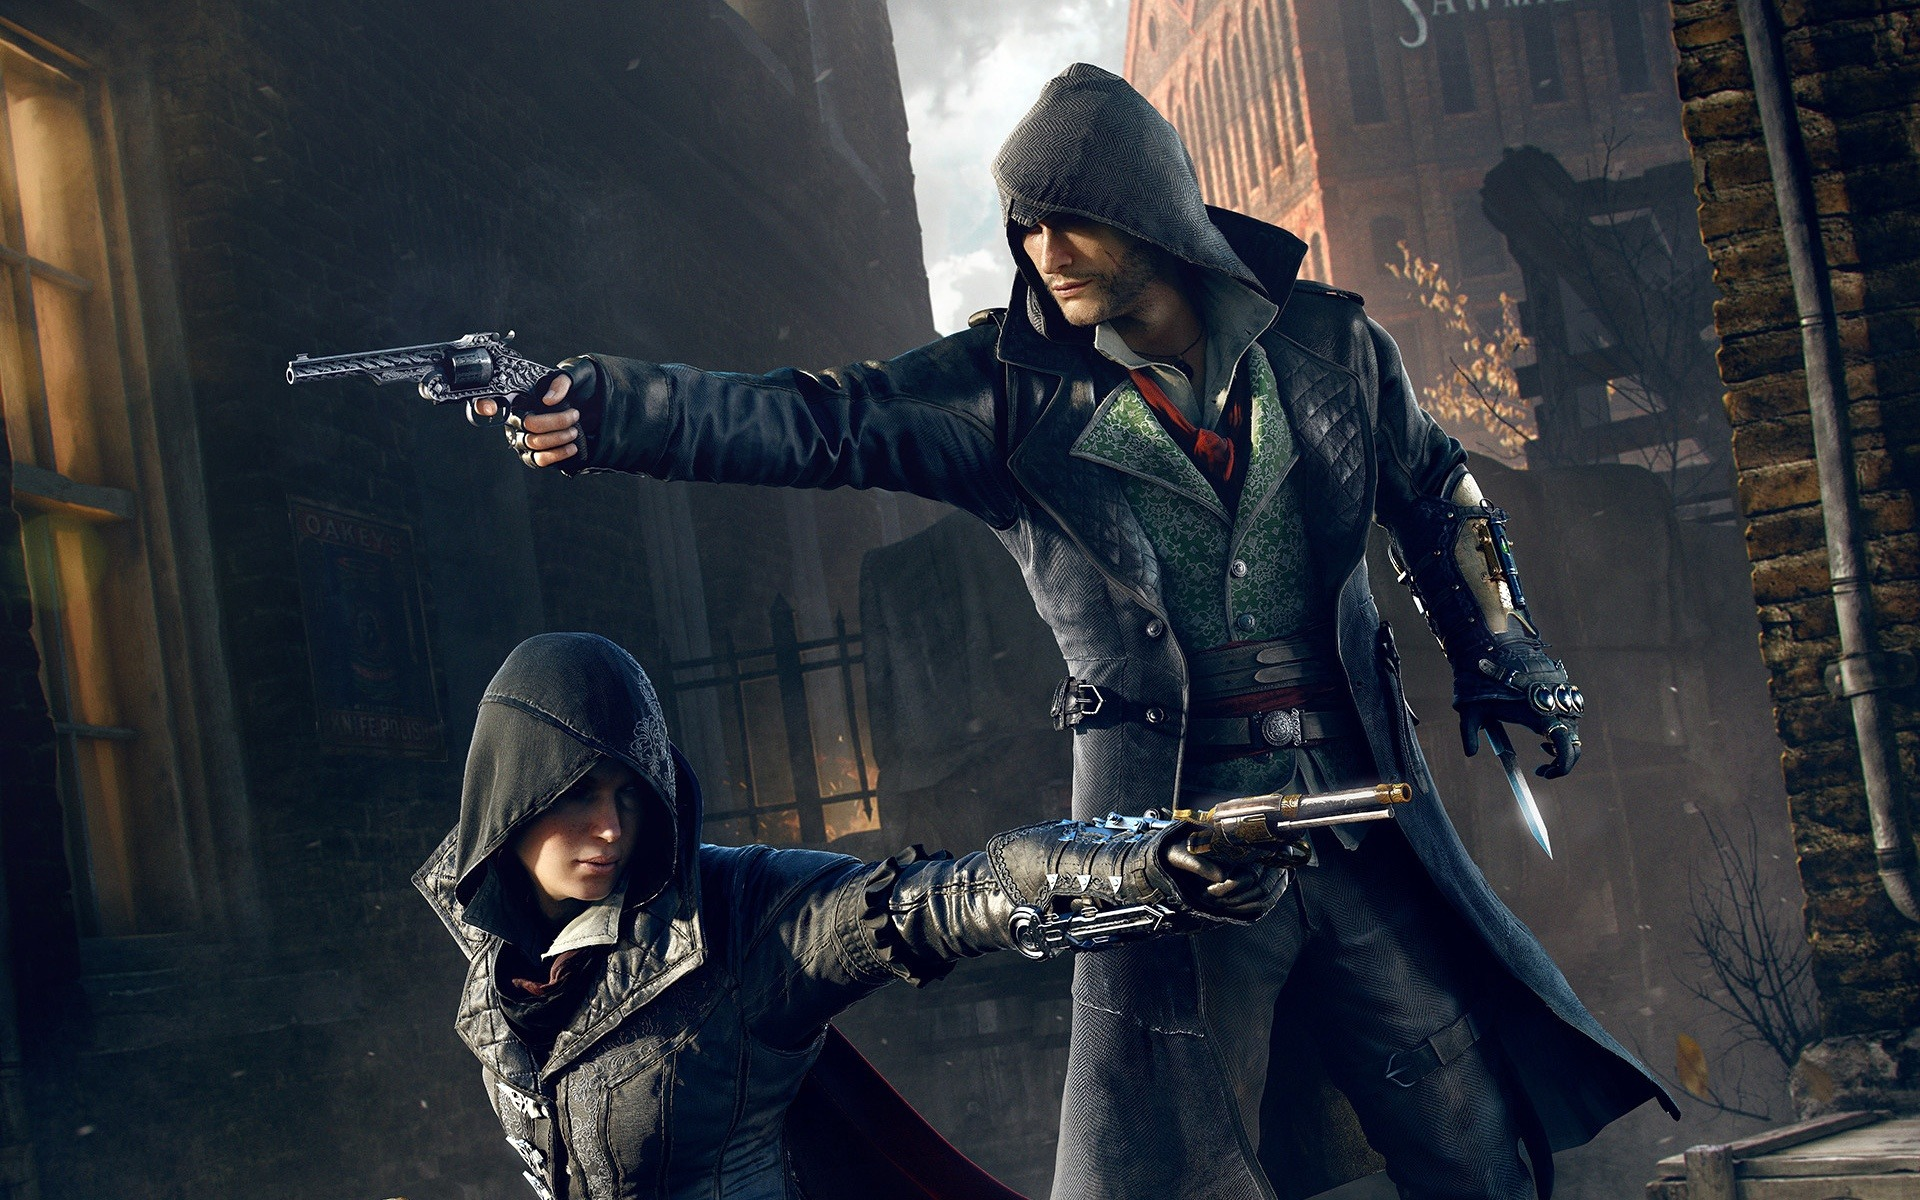 Assassins Creed Syndicate Game Hd Wallpaper Preview 10wallpaper Com